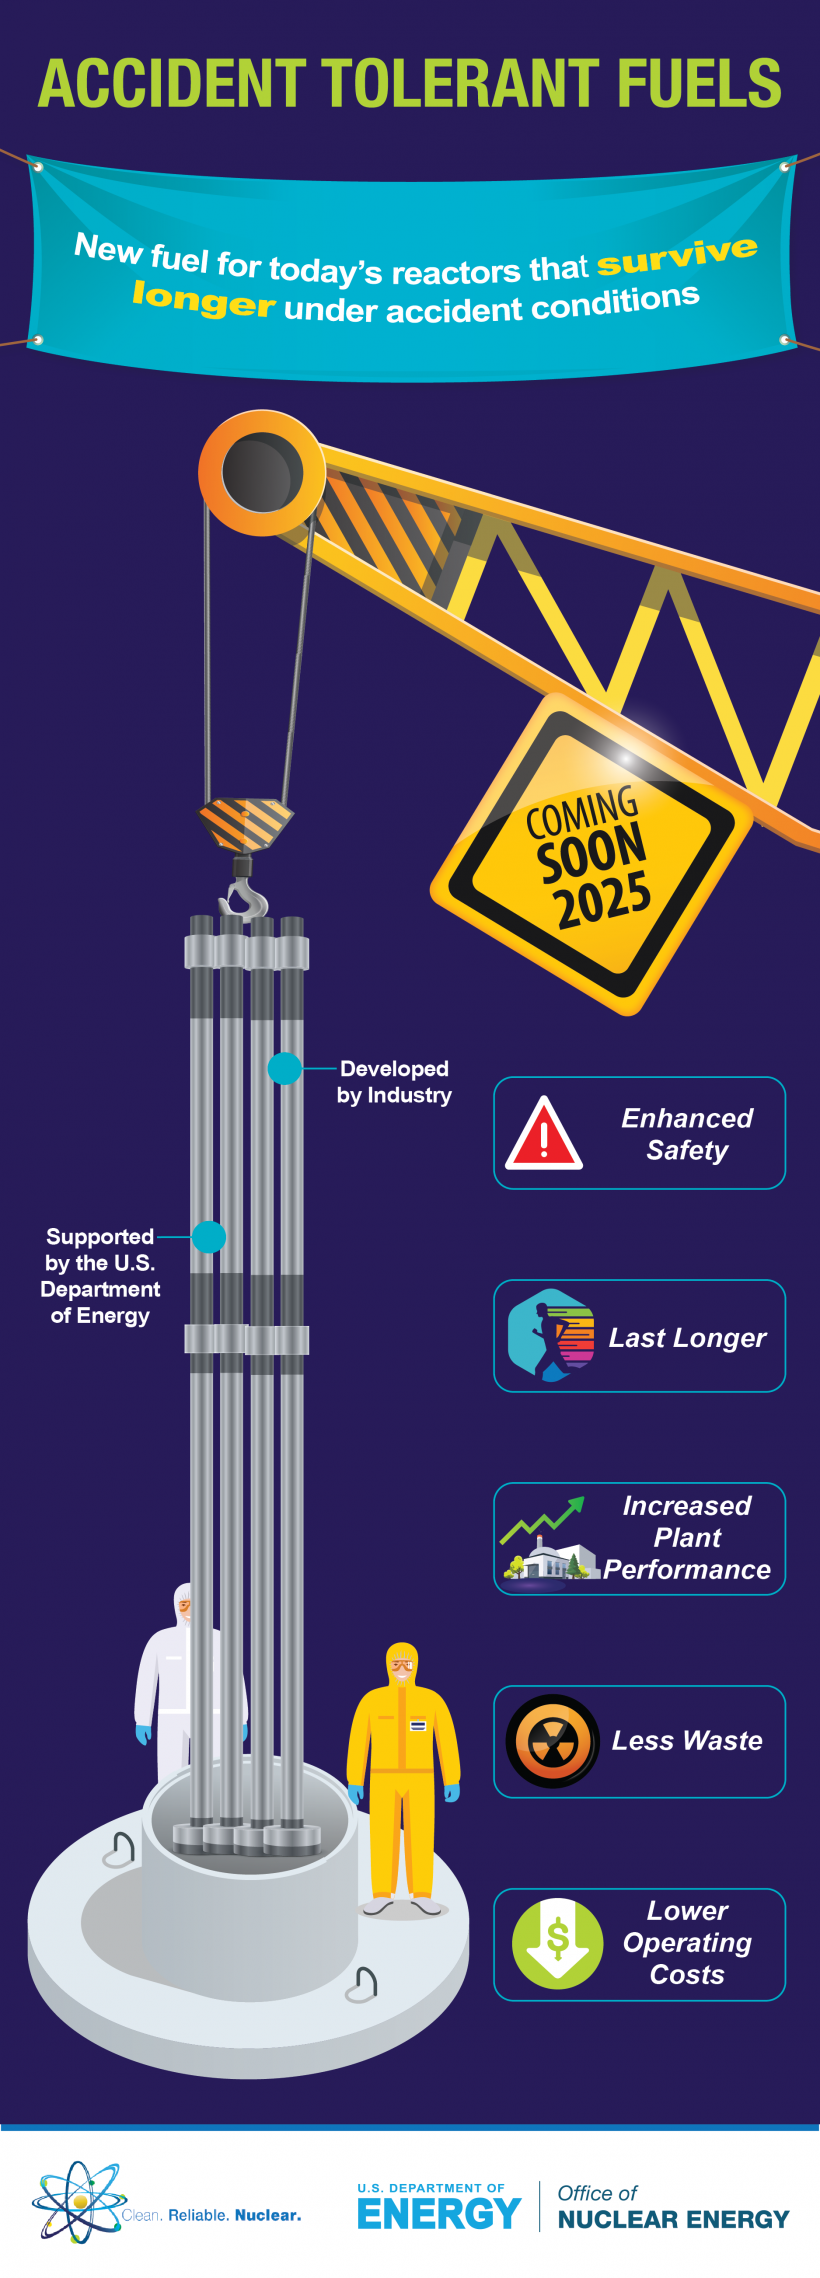 Accident Tolerant Fuels are new fuels for today's reactors that can survive longer under accident conditions.